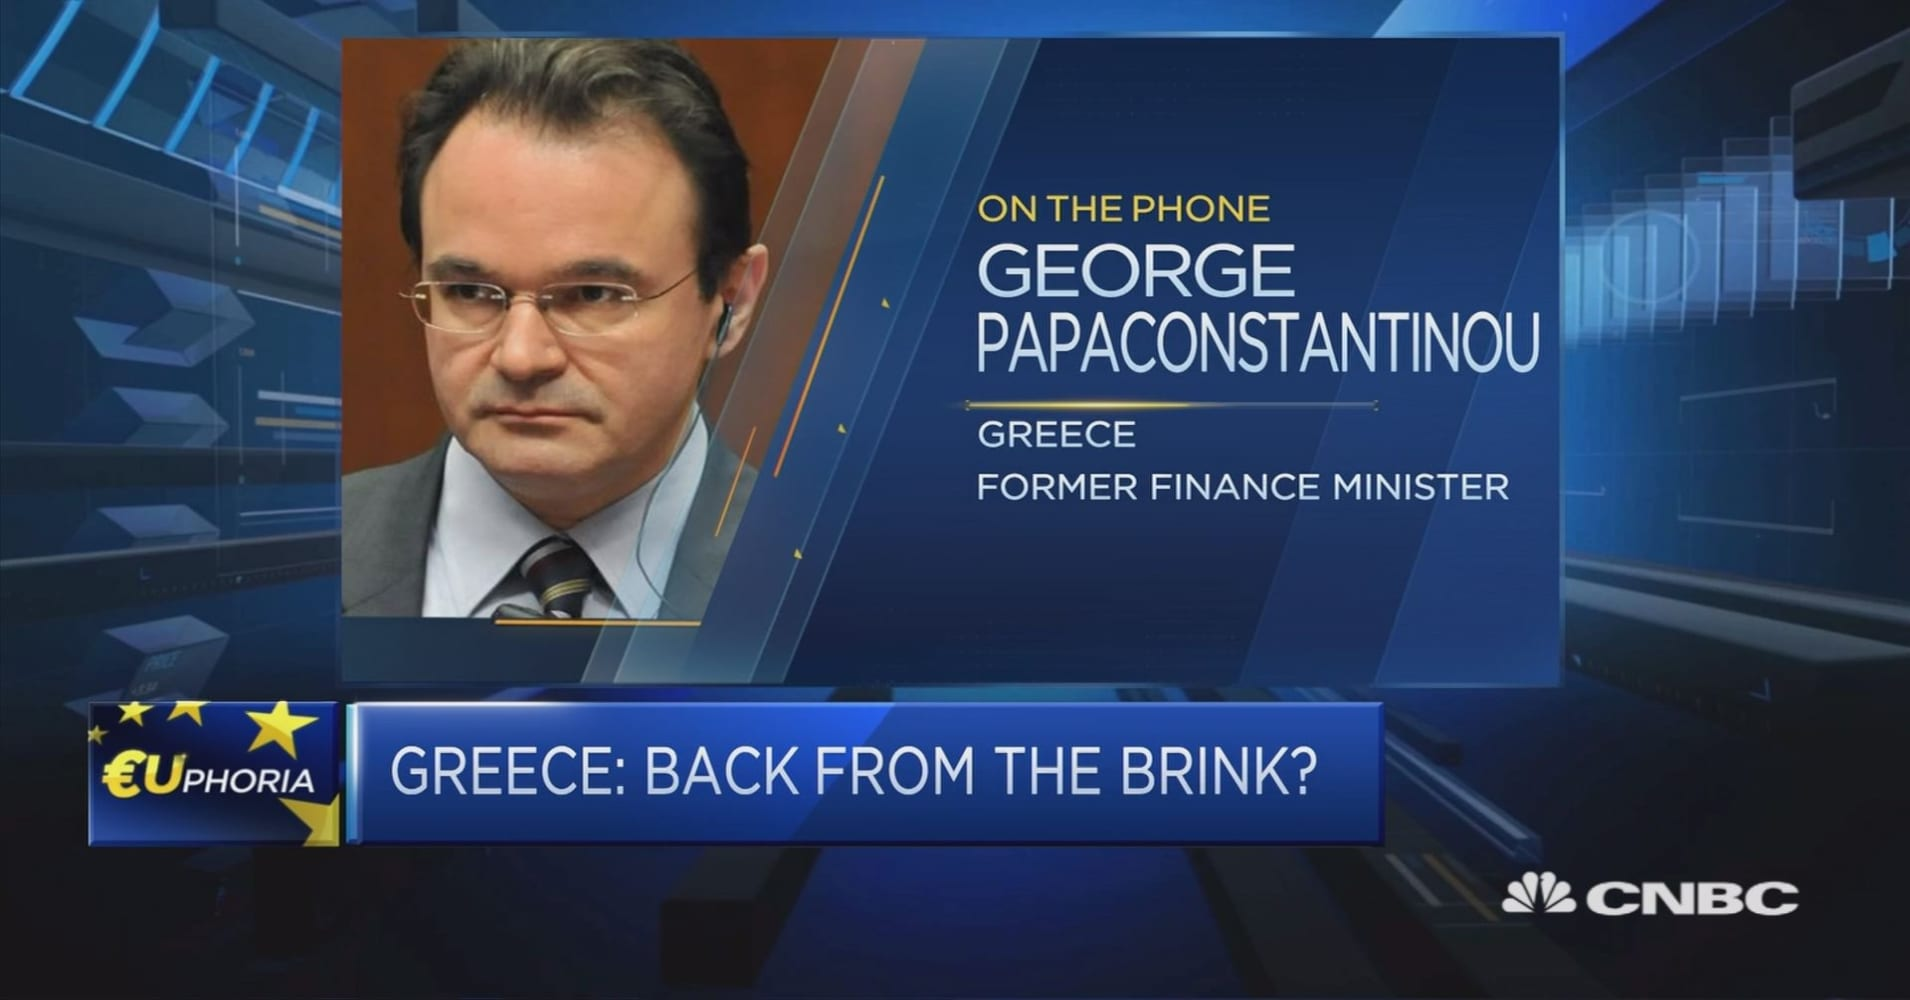 This is the first year the Greek economy will expand, says former finance minister